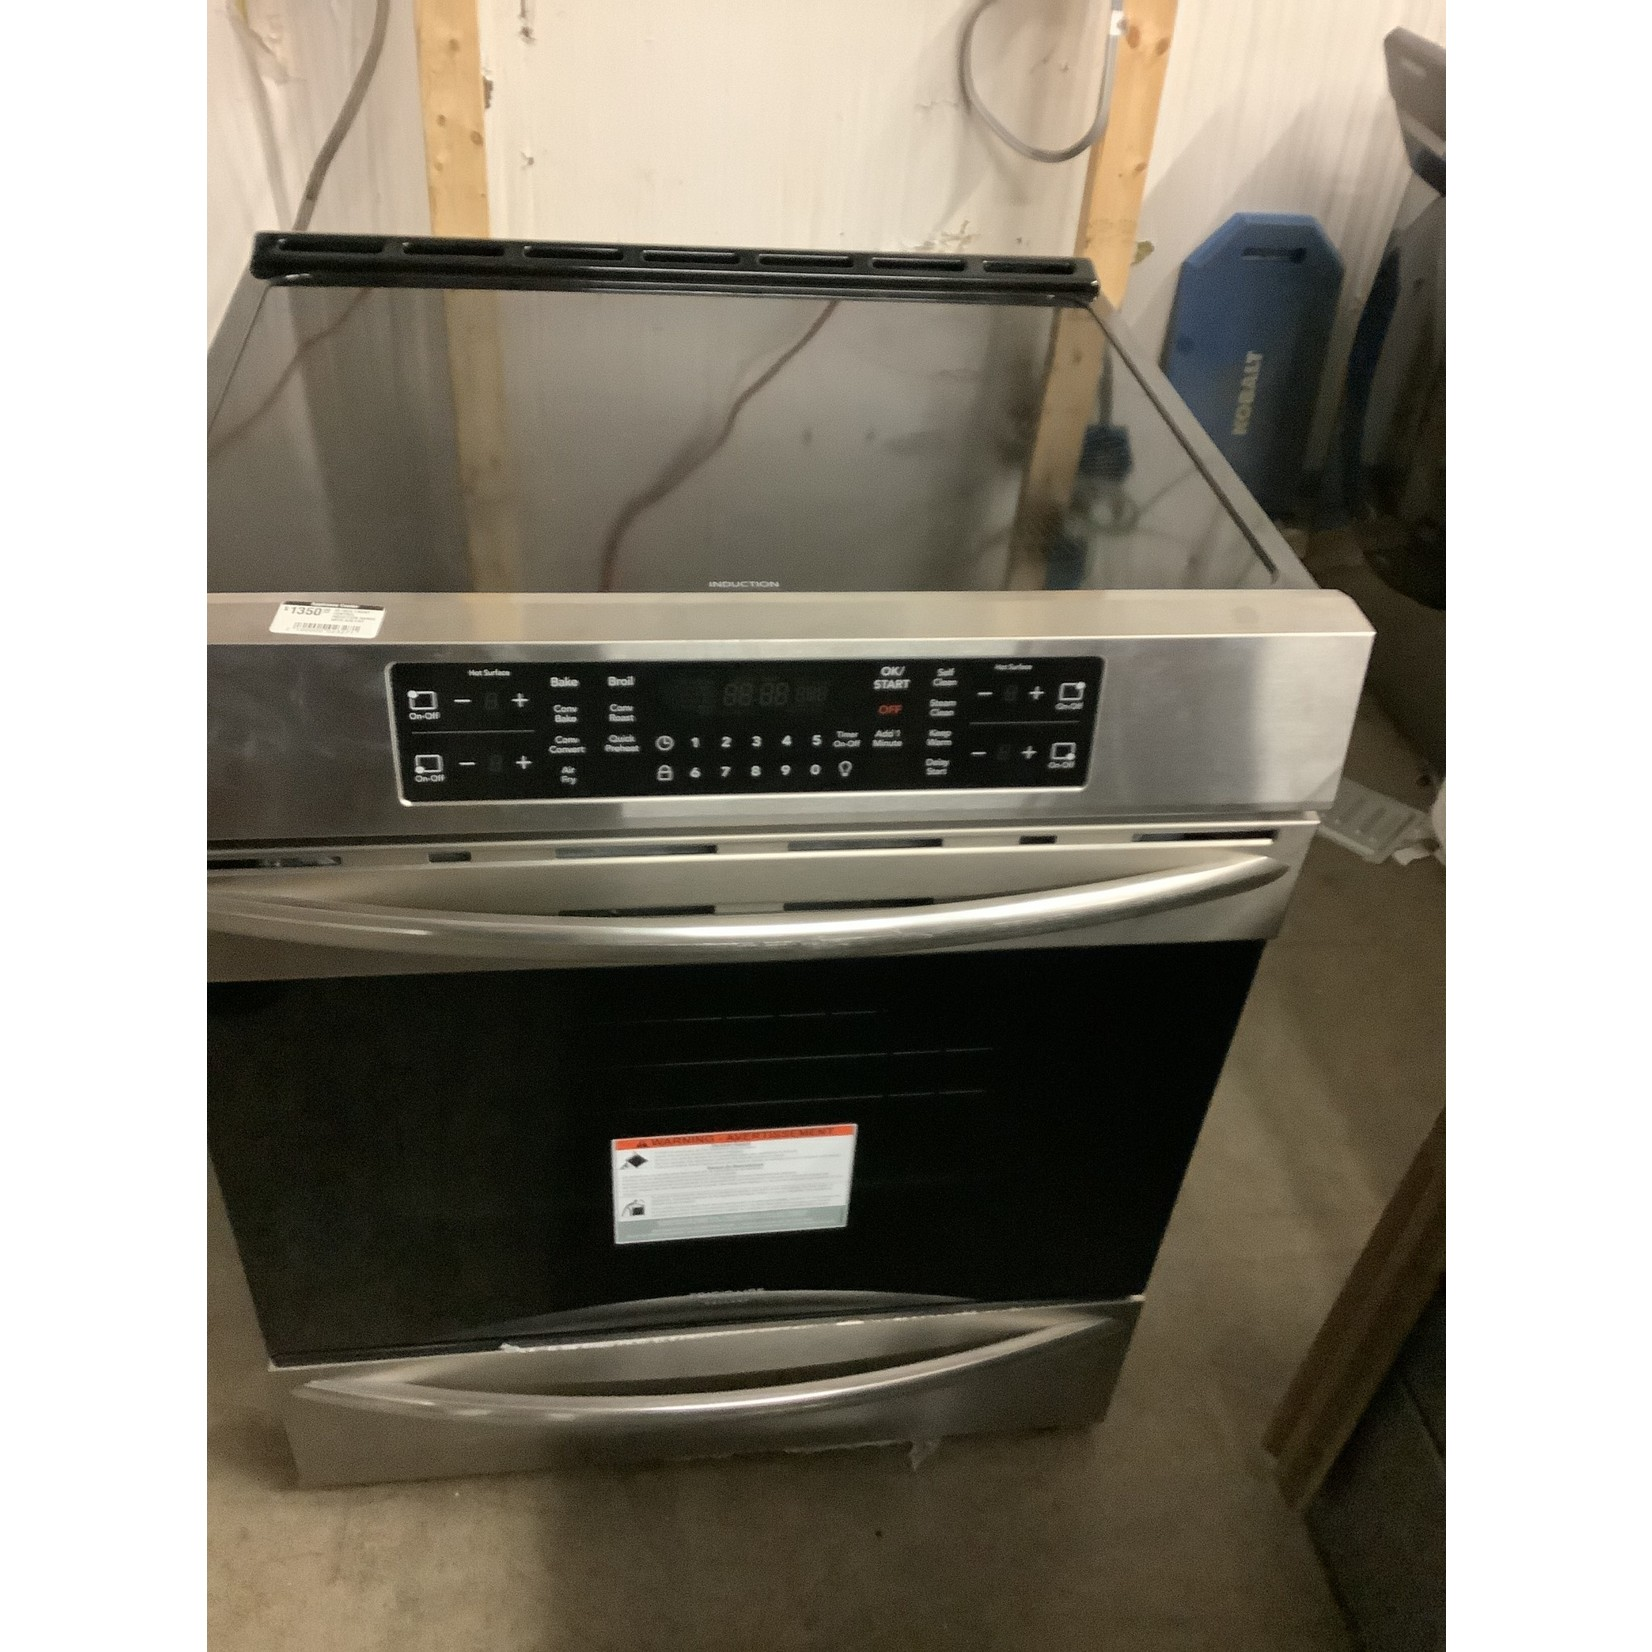 FRIGIDAIRE 30 INCH FRONT CONTROL INDUCTION RANGE WITH AIR FRY